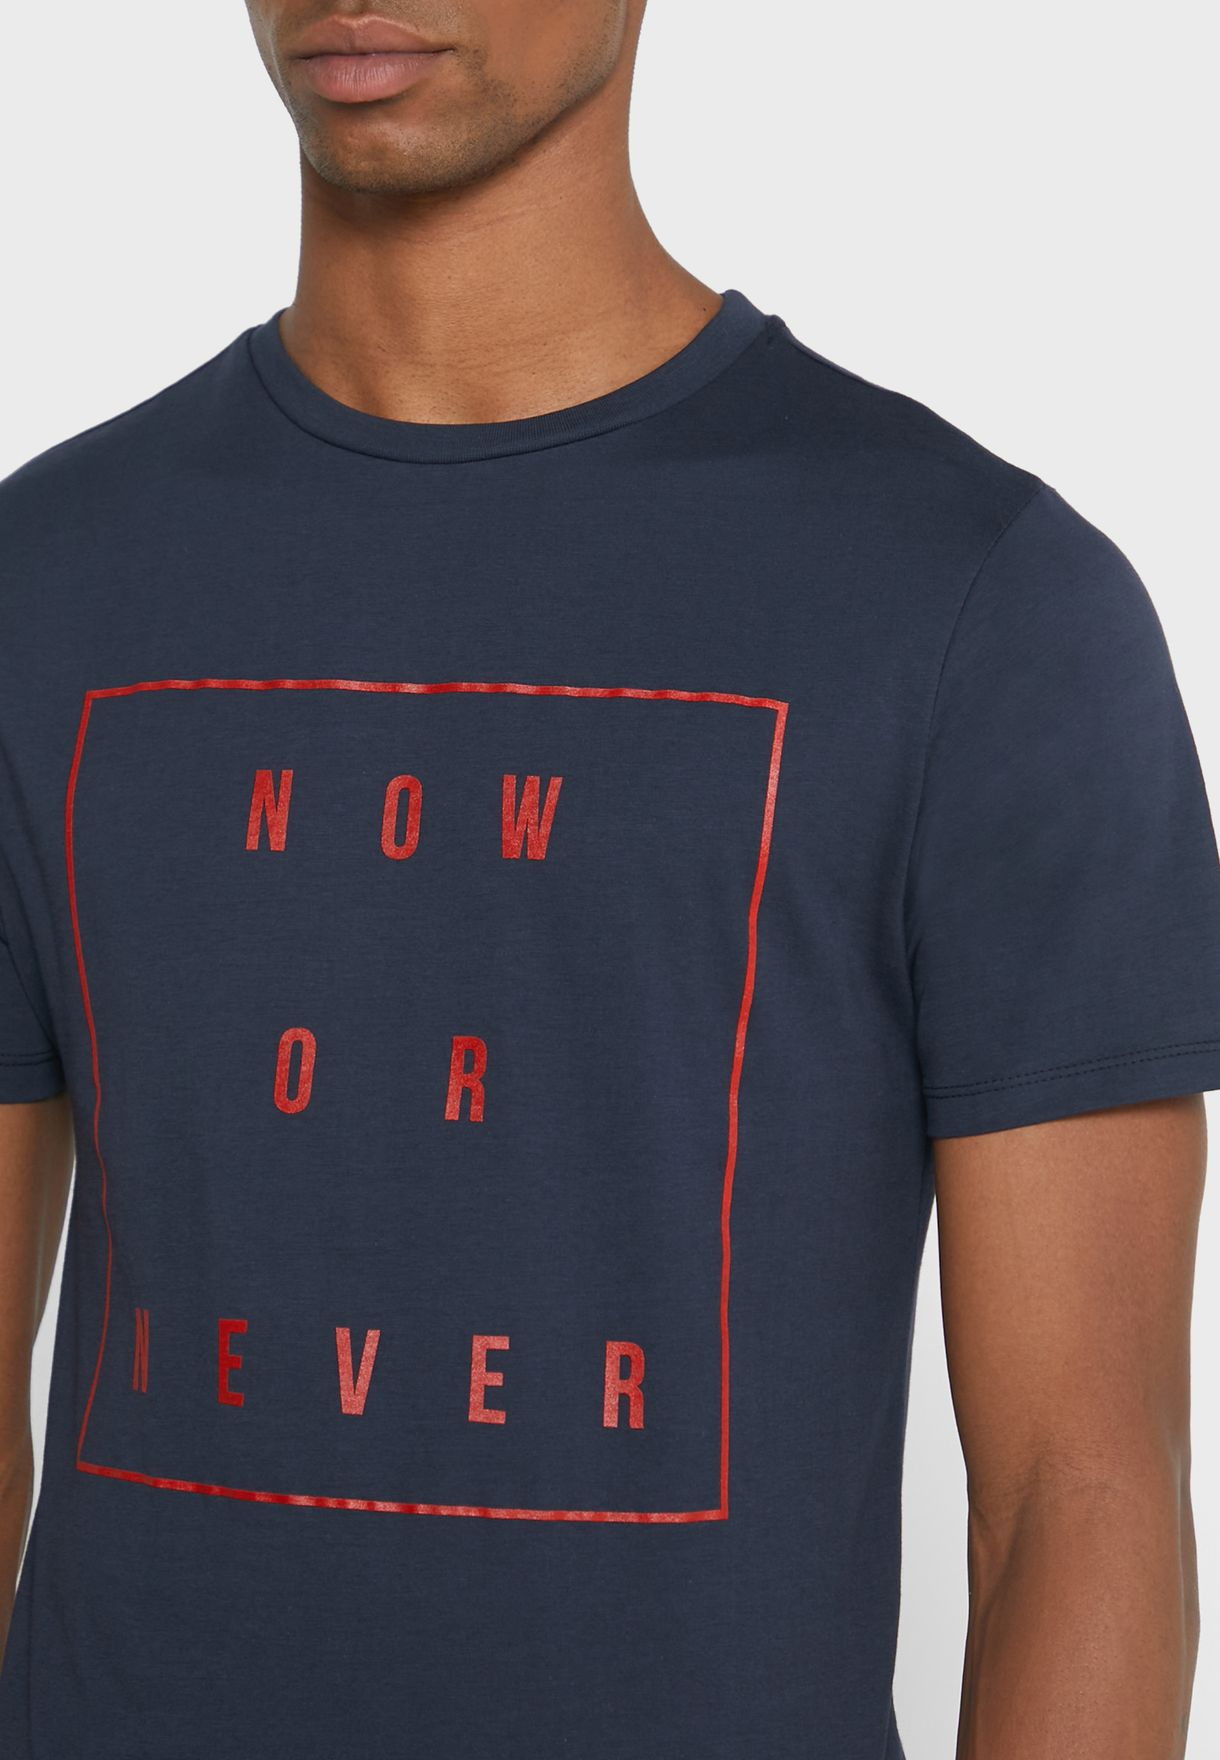 Now or Never T- Shirt